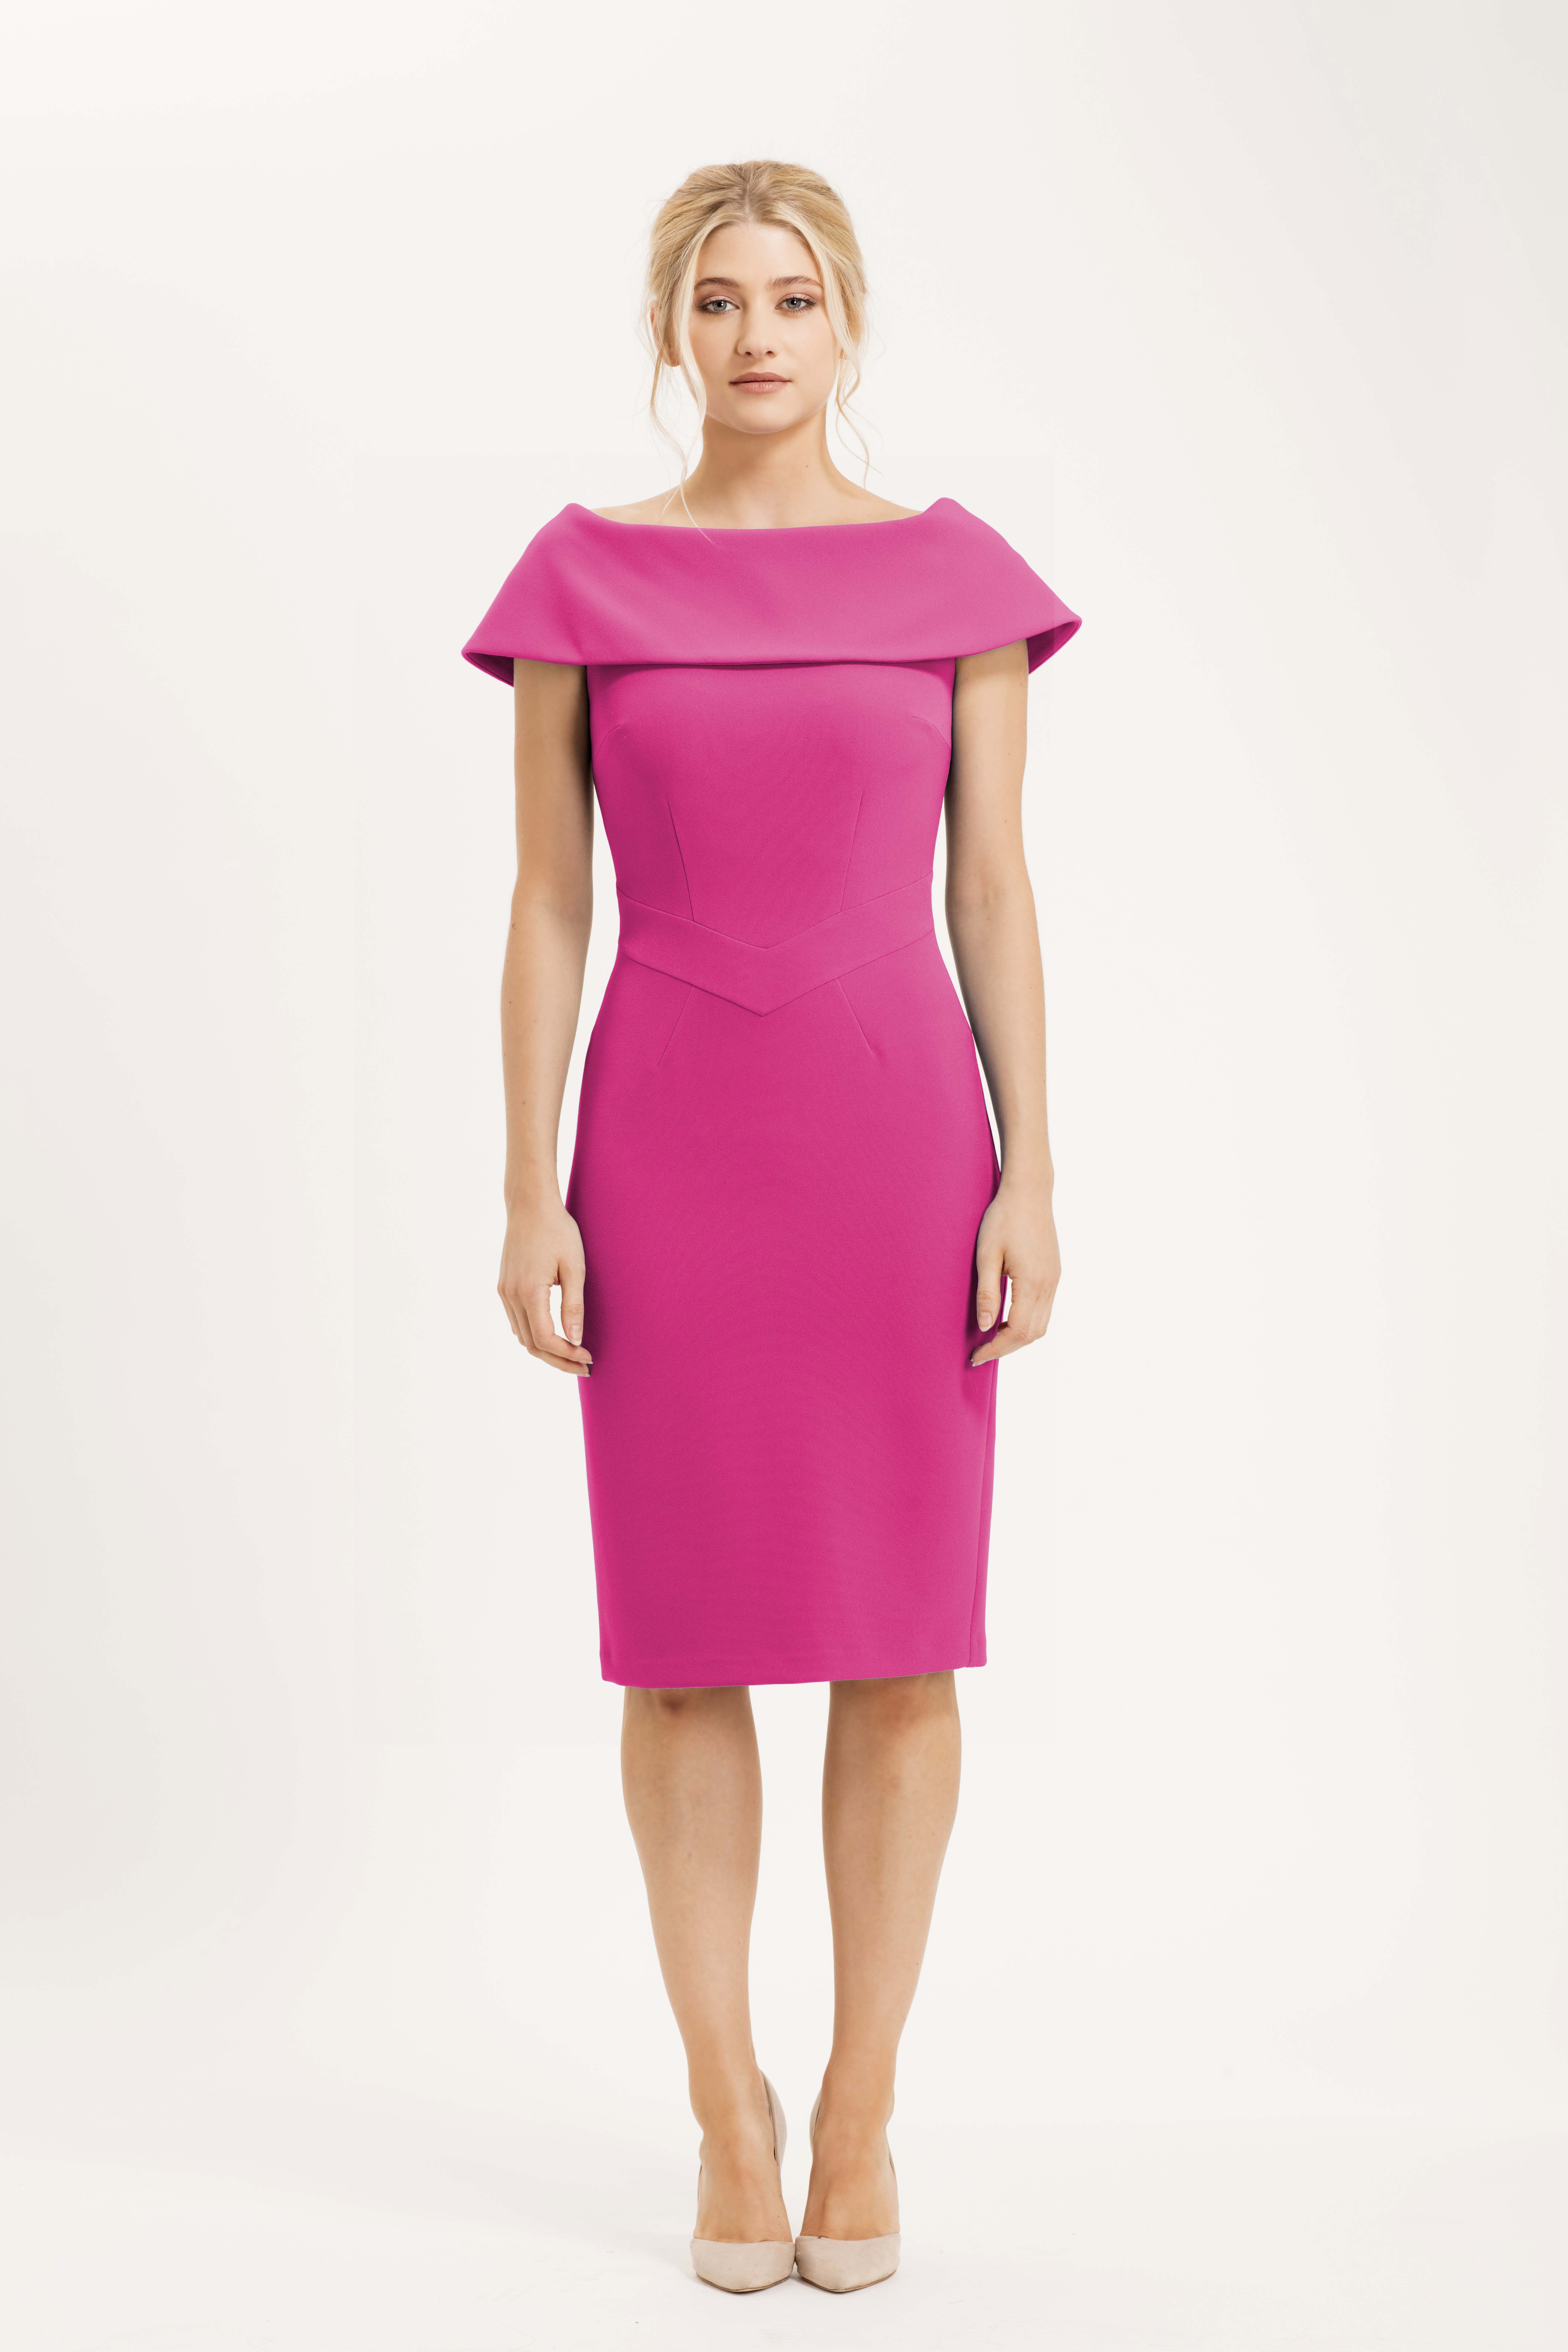 The Palermo dress is simply stunning. Fitted pencil dress silhouette ...